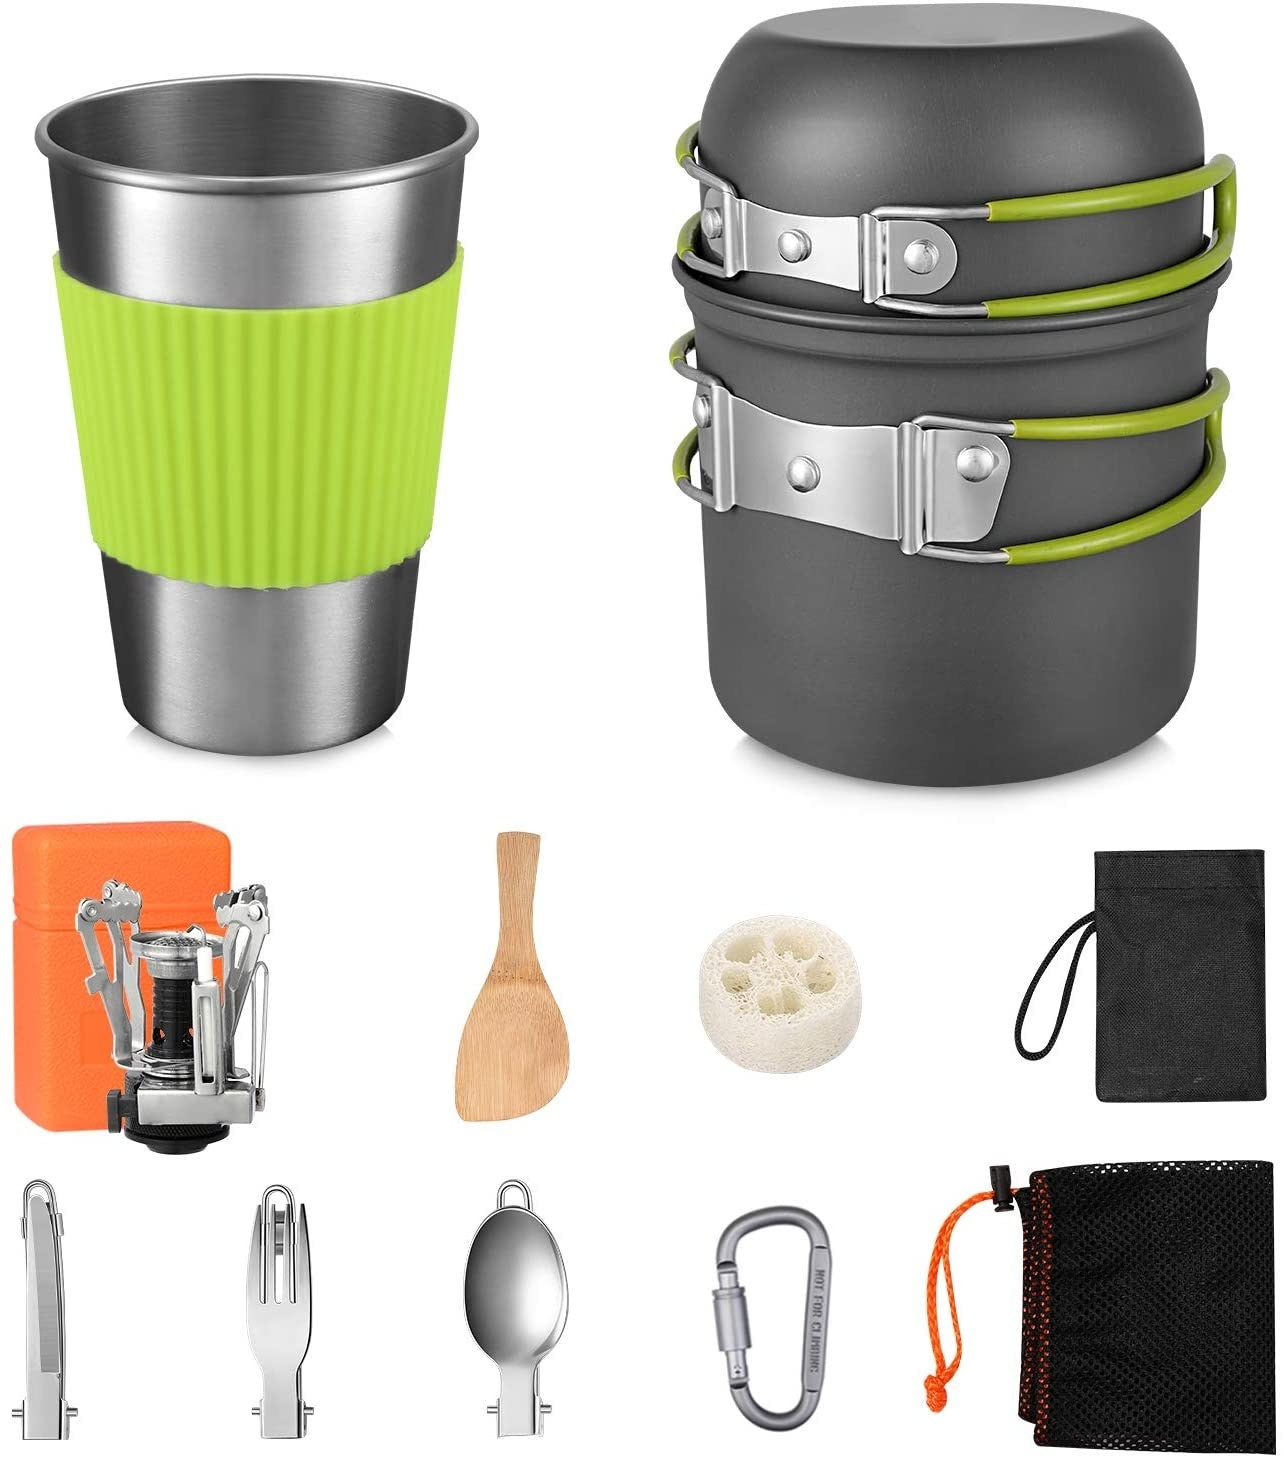 the various things in the mess kit